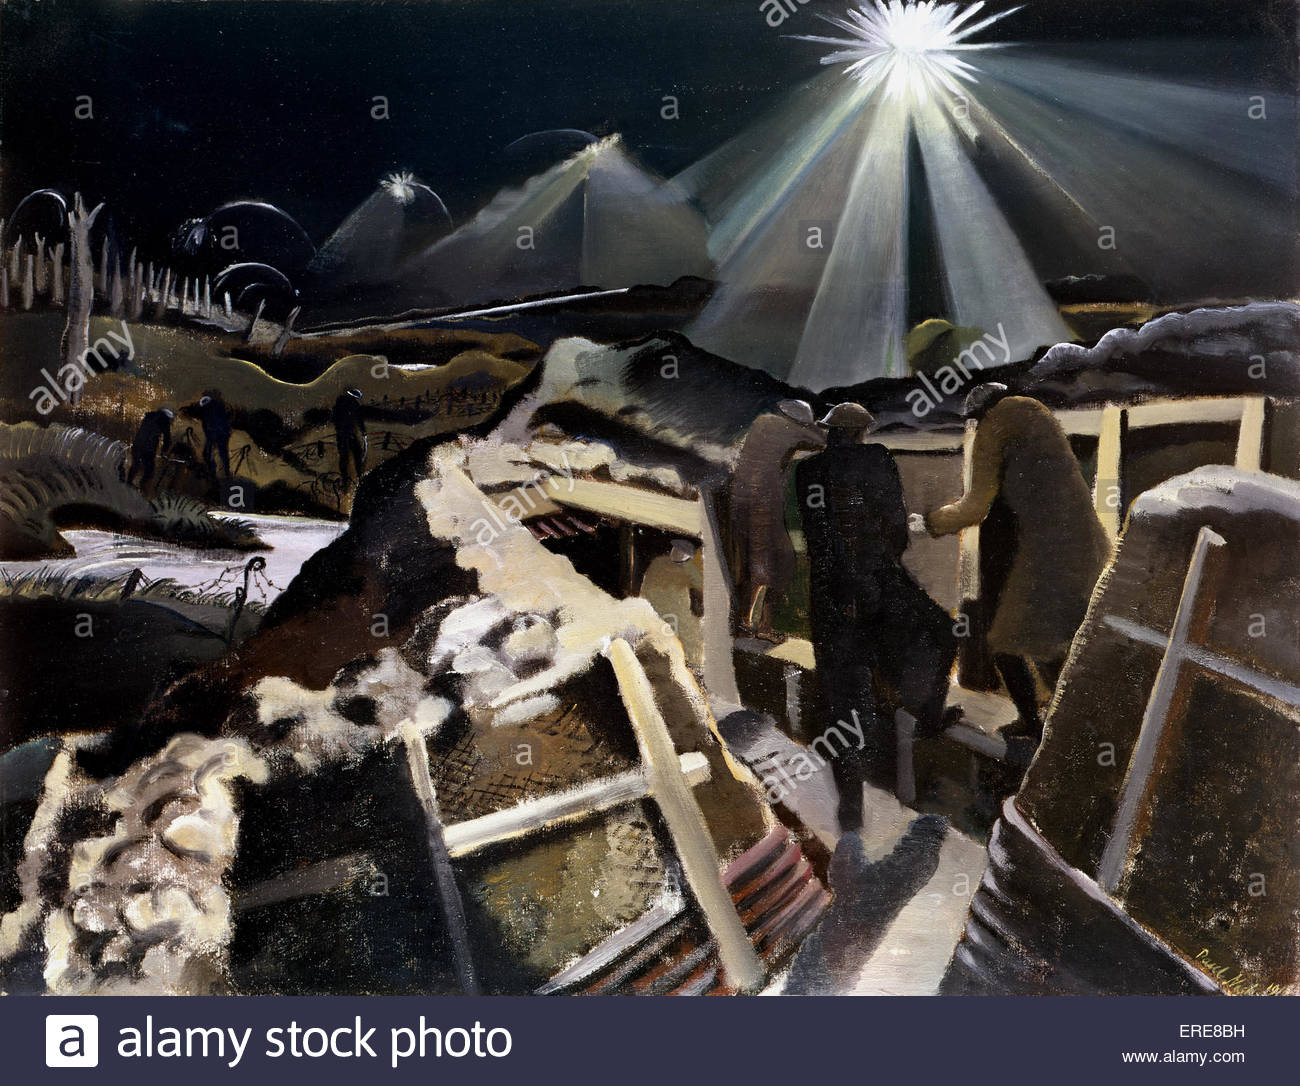 Ypres Salient at Night, painting by Paul Nash (1889-1946) from WW1 series. Courtesy Imperieal War Museum. - Stock Image